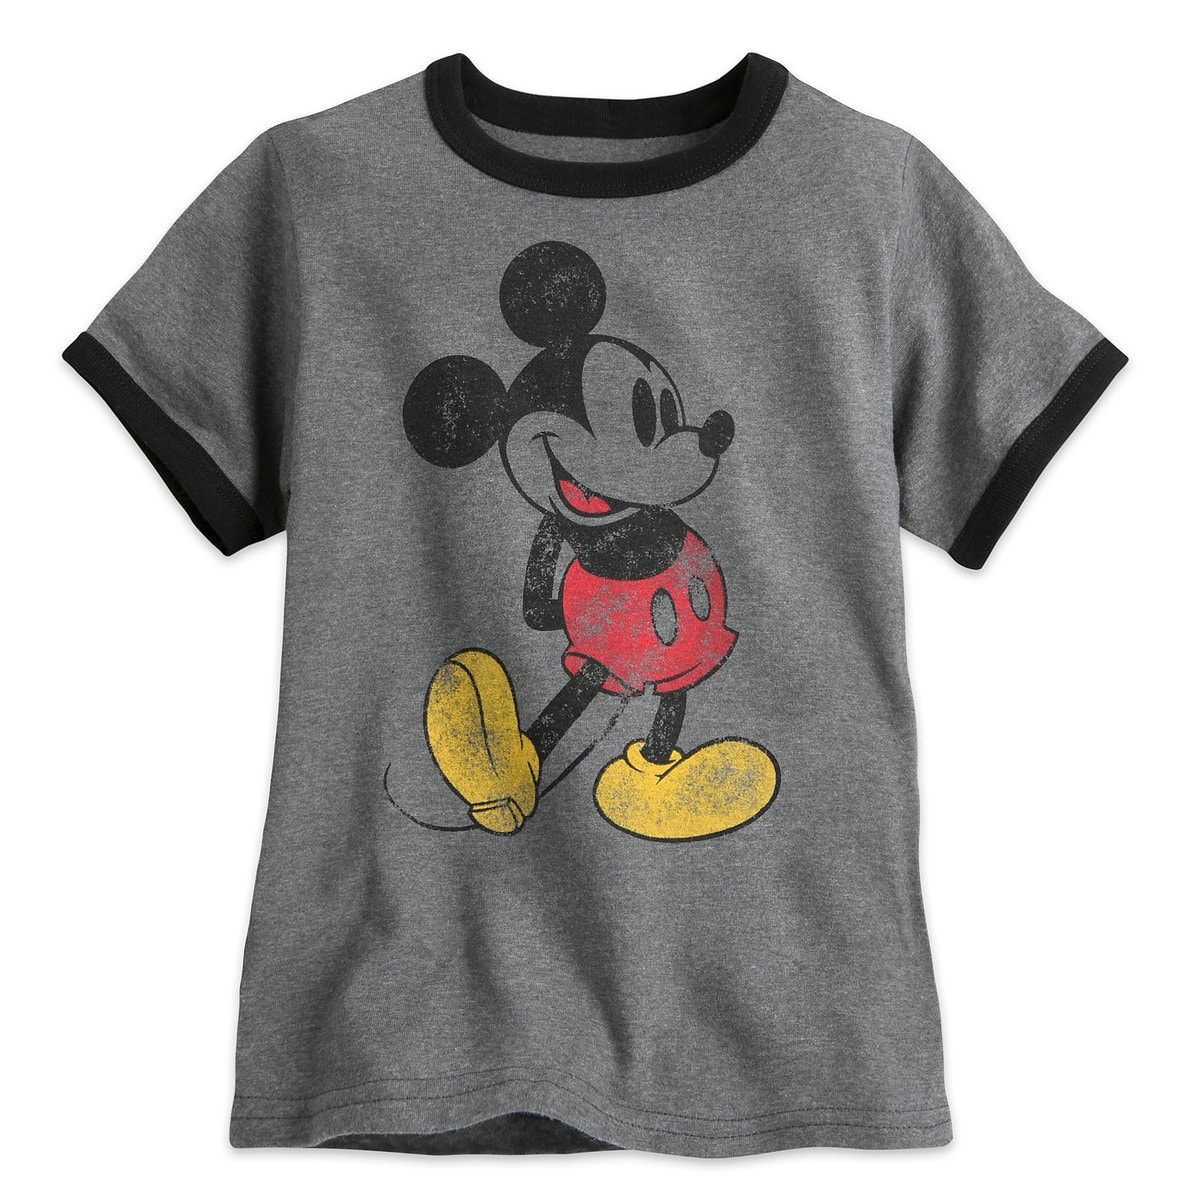 Image result for mickey mouse shirt